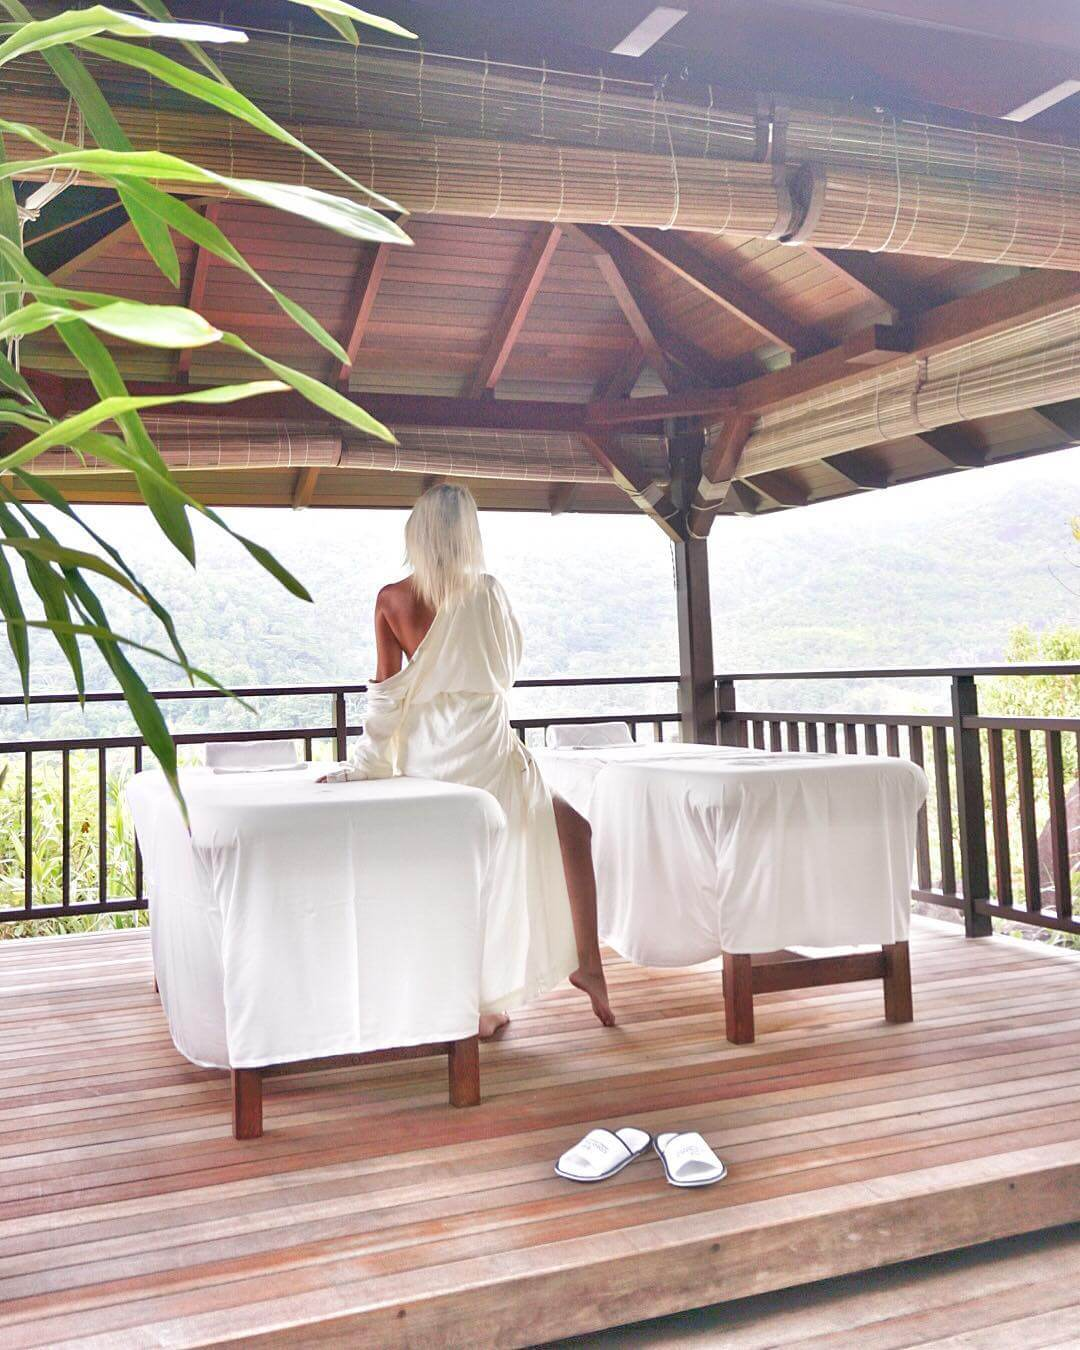 Self-care at Constance Ephelia Seychelles spa